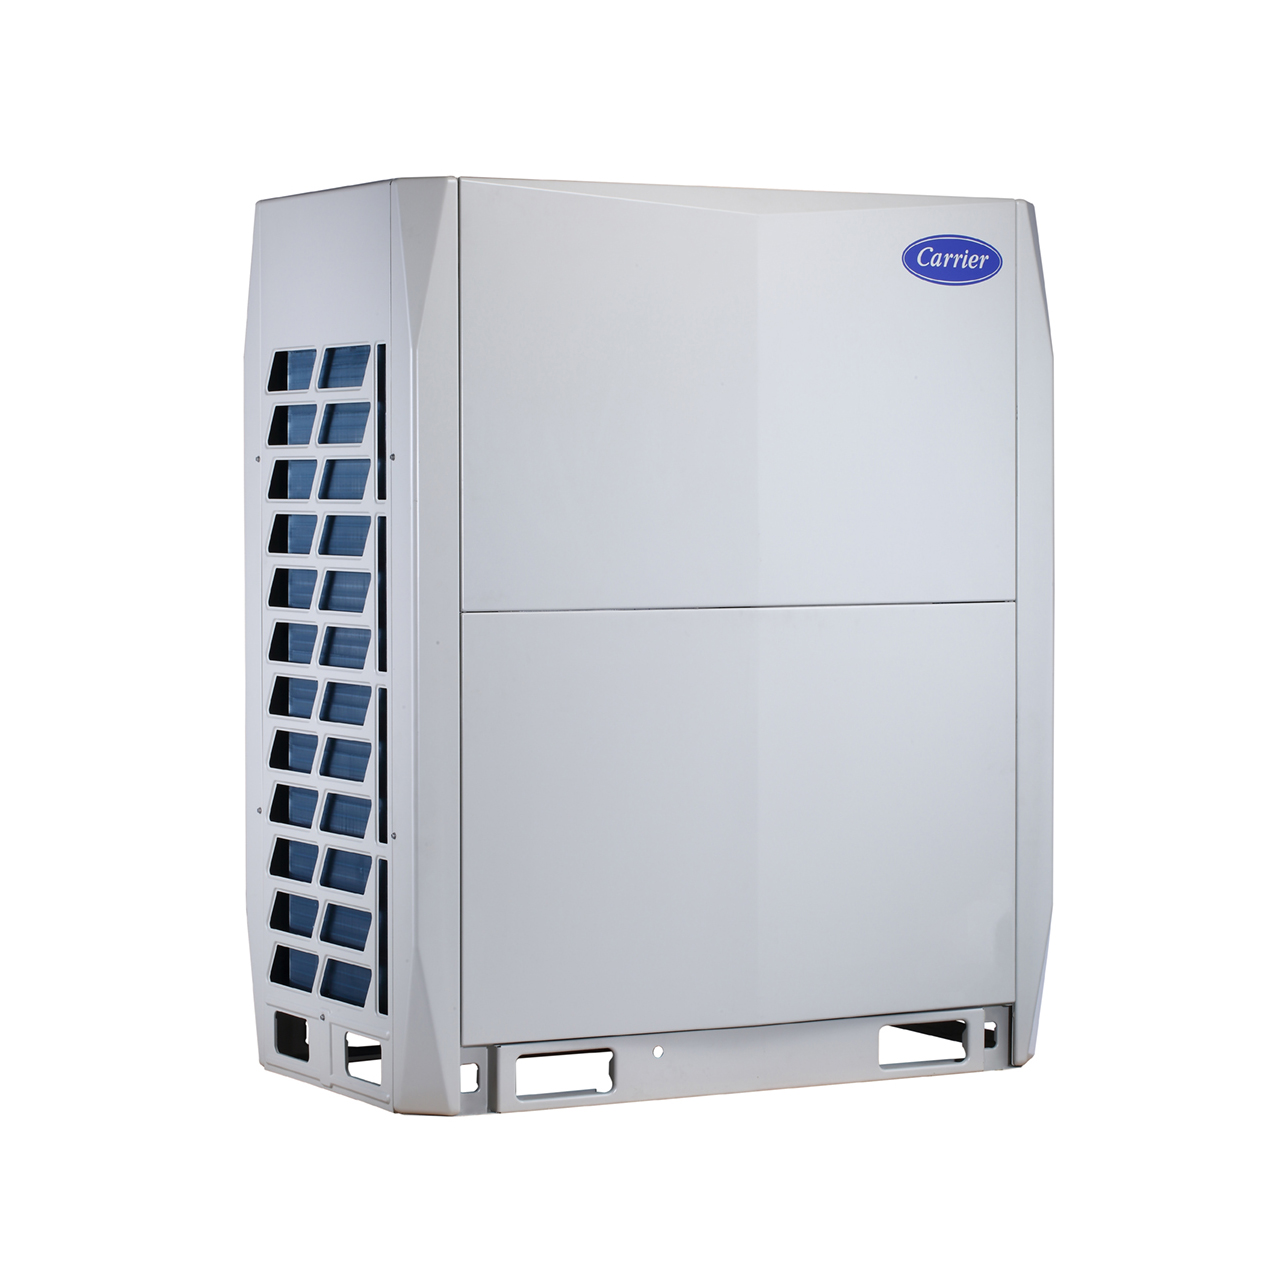 carrier-38vmh-vrf-heat-pump-system-a